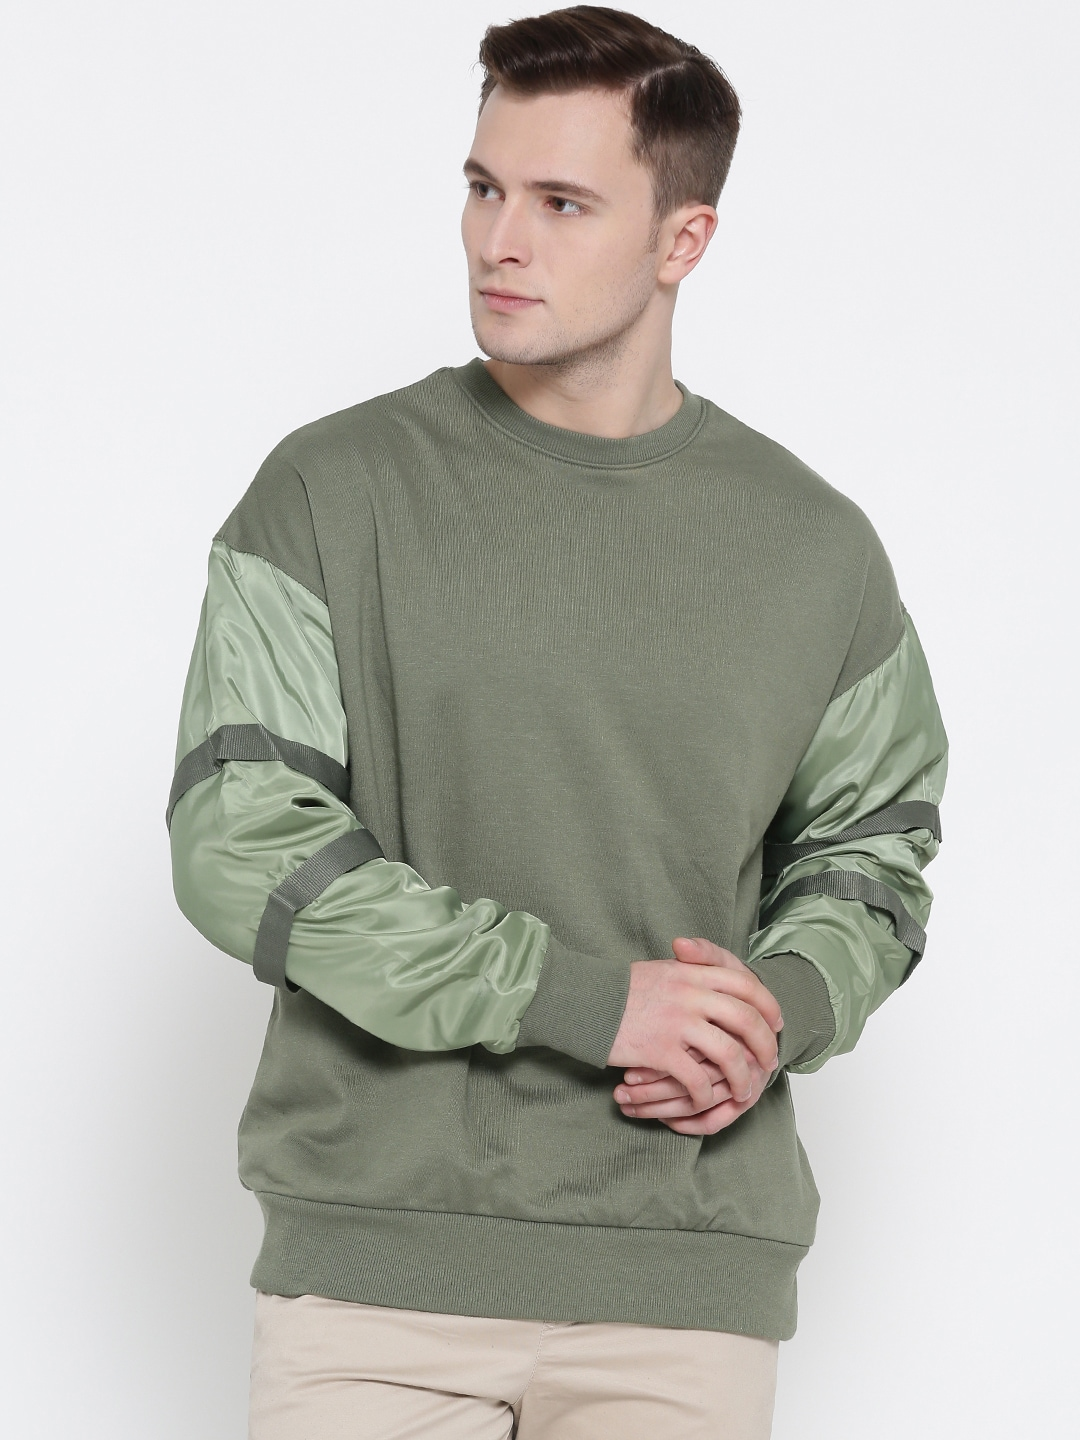 FOREVER 21 Men Olive Green Solid Sweatshirt image